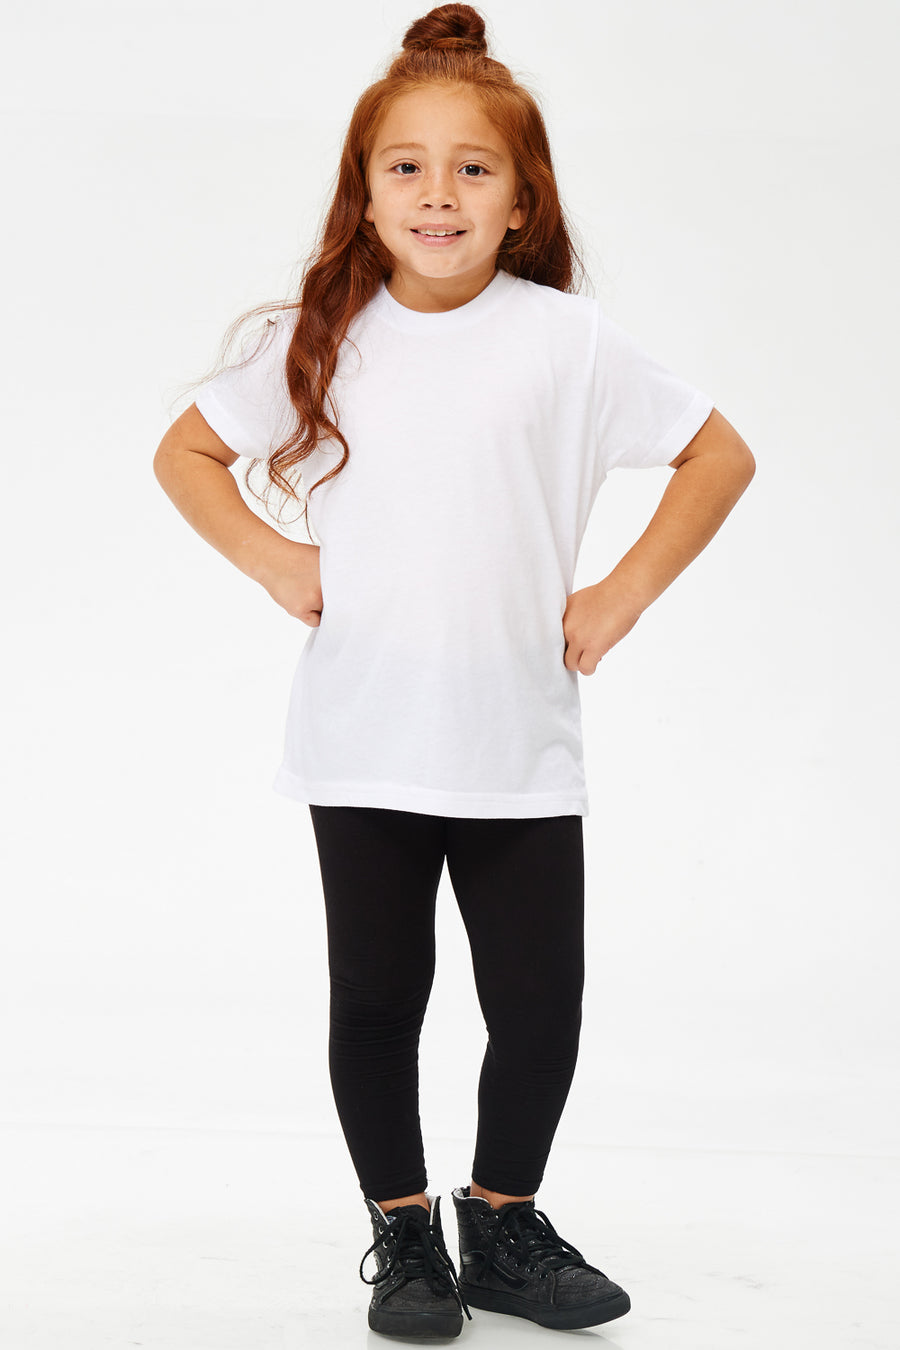 204: YOUTH POLY-COTTON TEE